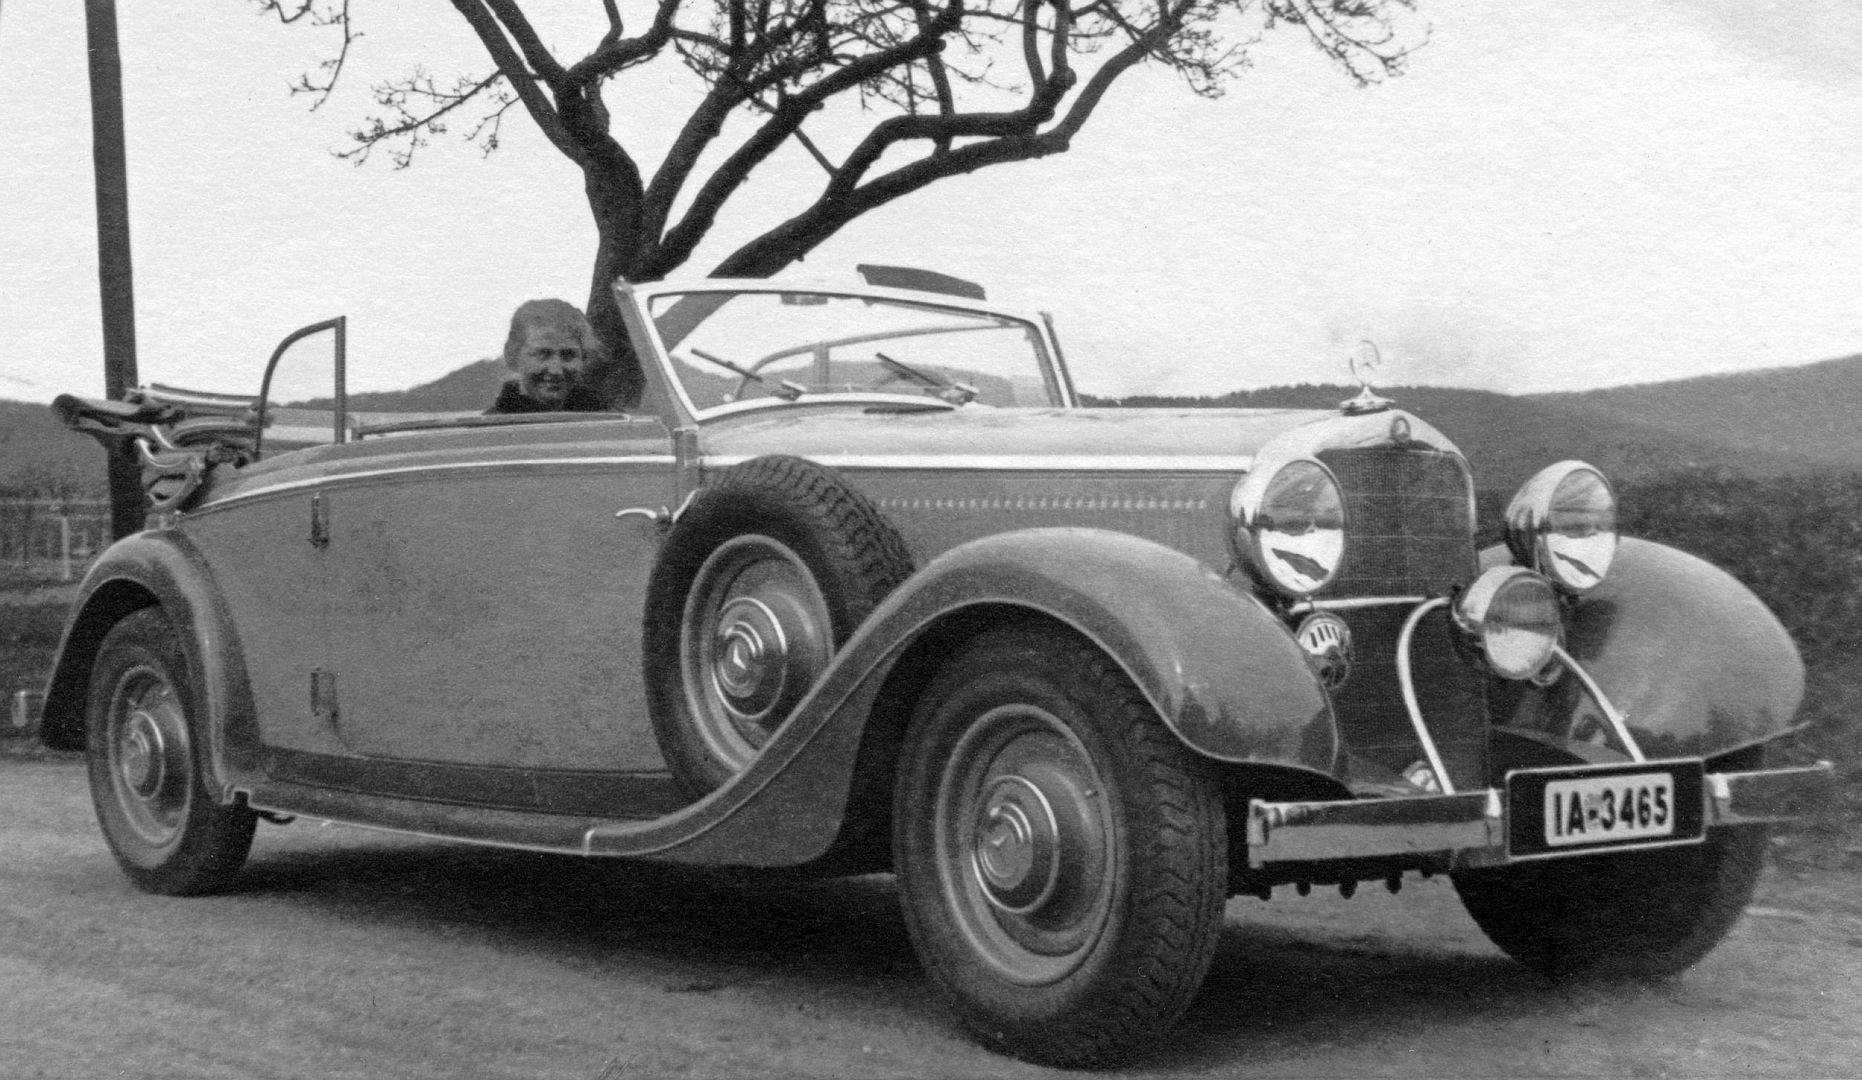 Mercedes_290_lang_Cabrio_B_Foto_Stecher_Bad Pyrmont_Galerie